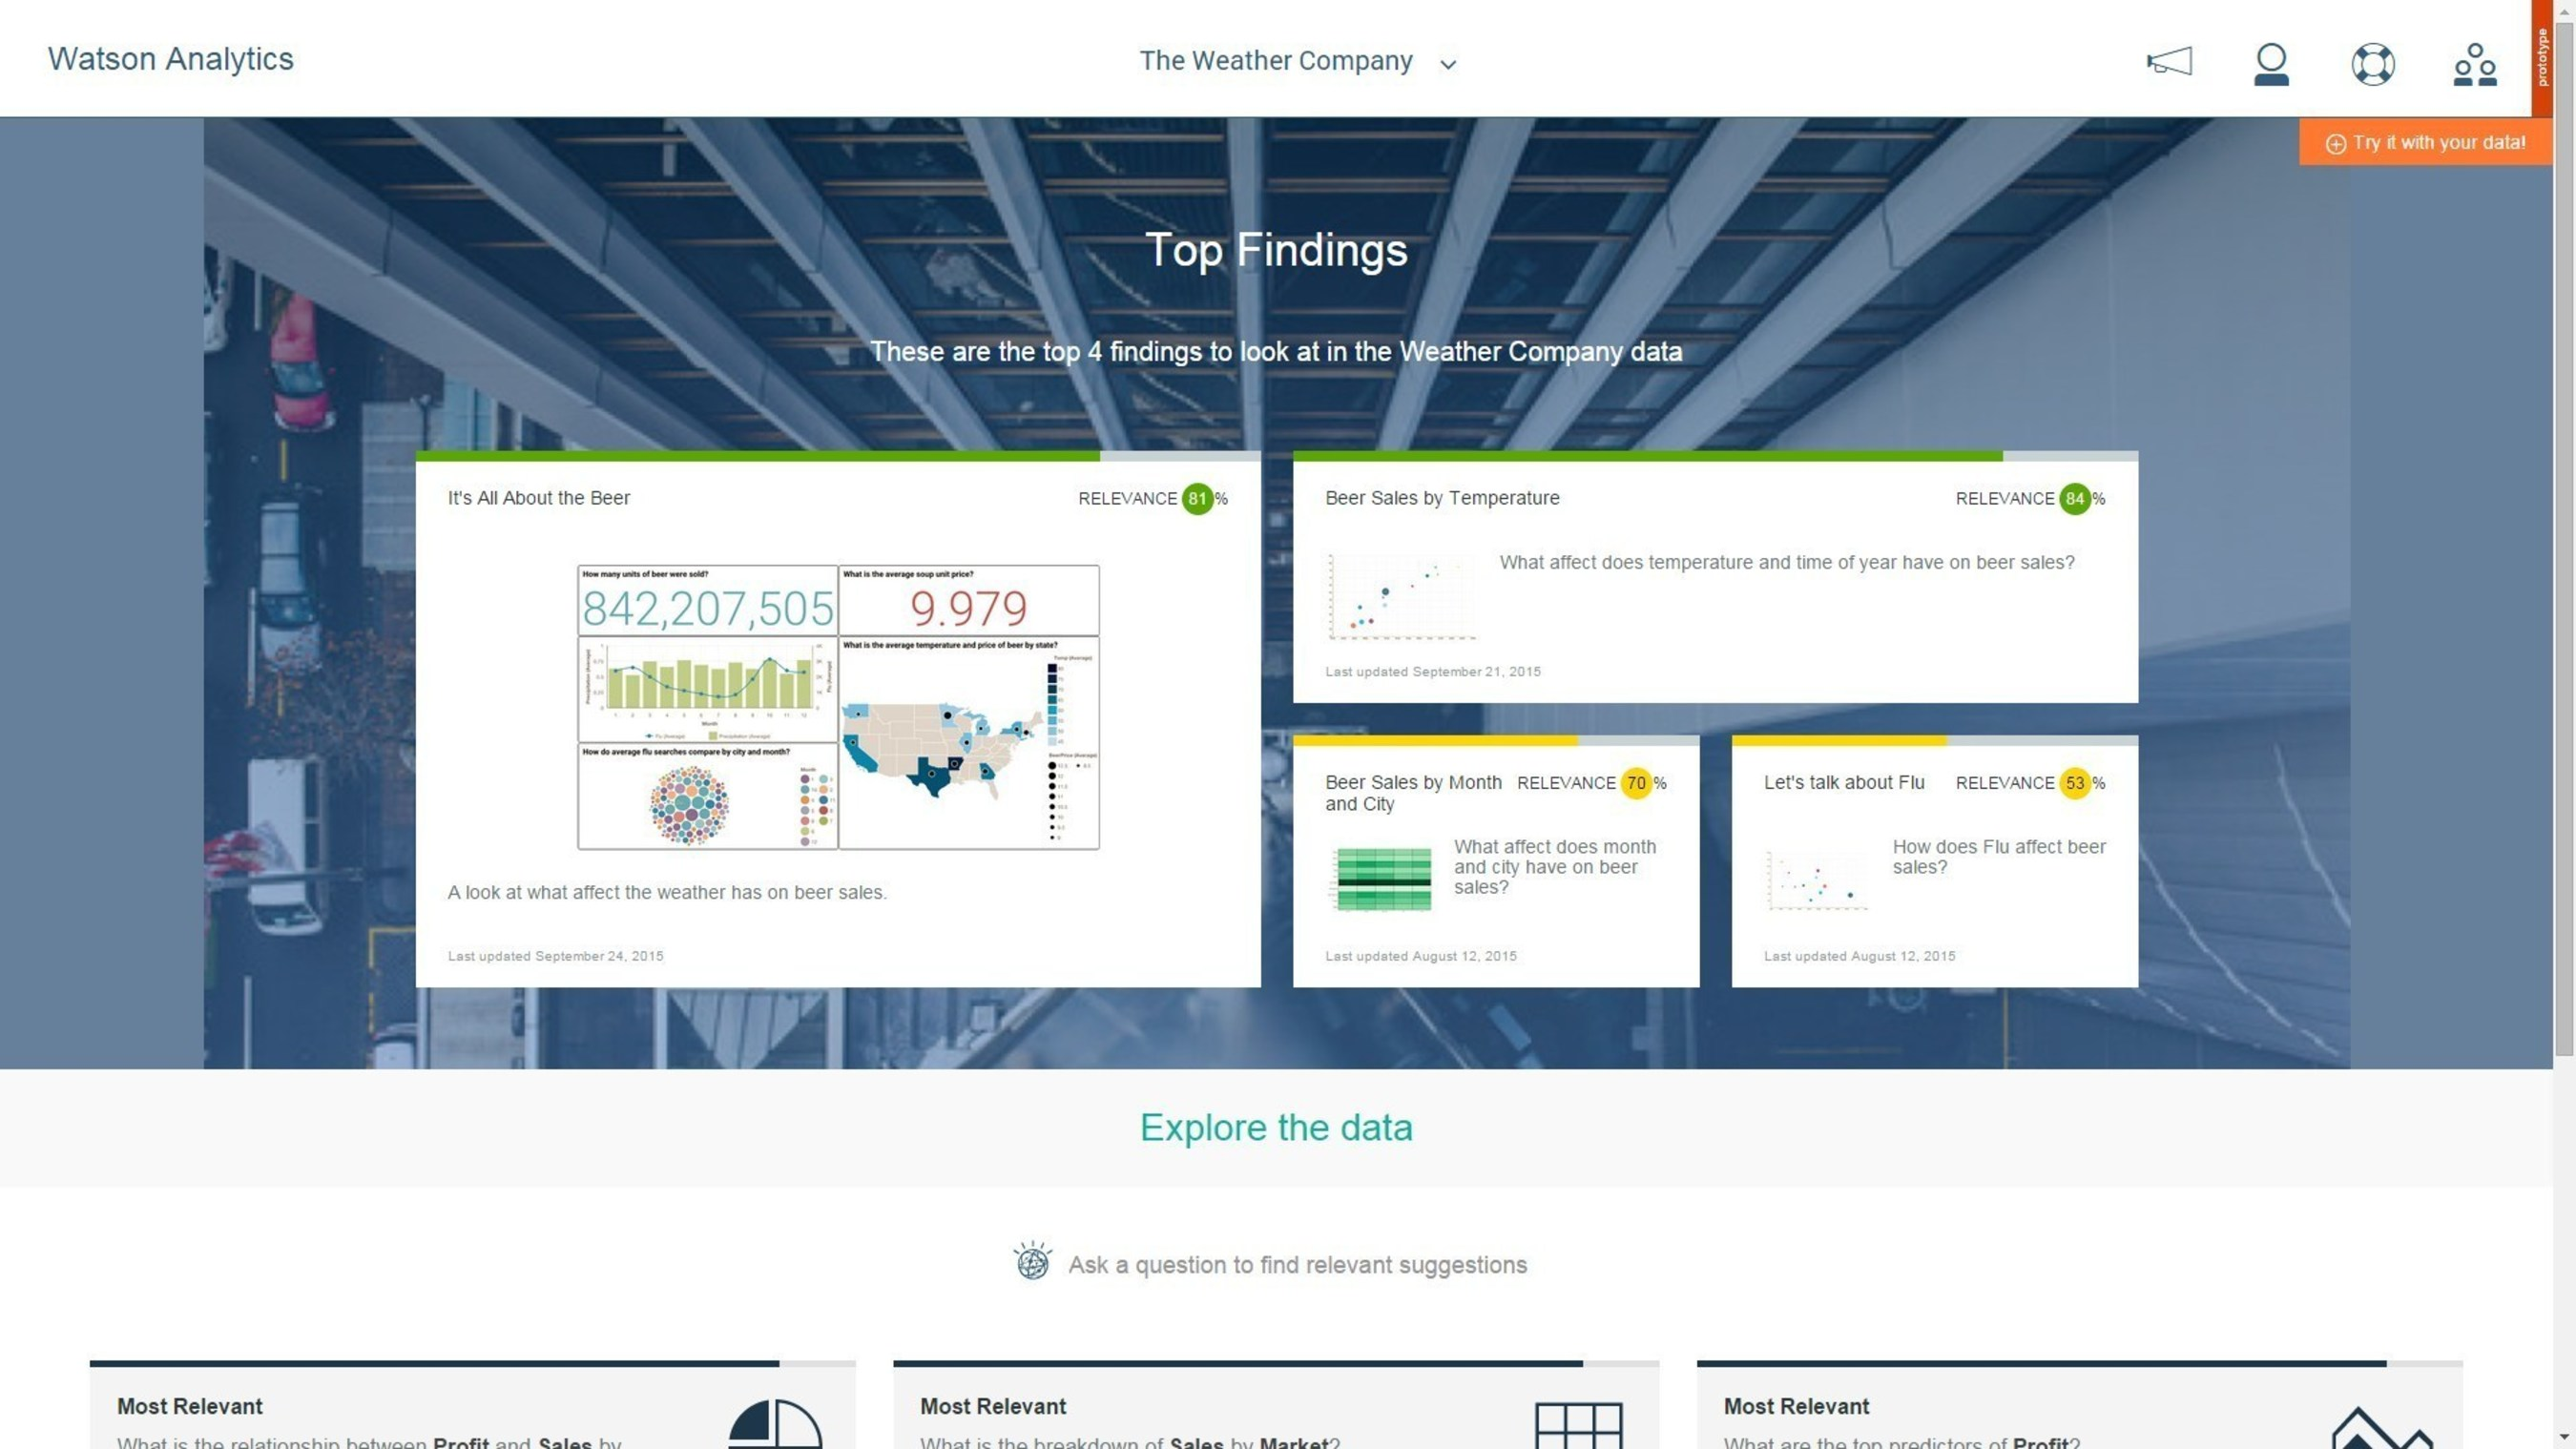 The Weather Company's new Expert Storybook in IBM Watson Analytics allows users to blend weather data with other business data to better understand how weather impacts business. In this visualization, The Weather Company Expert Storybook shows how weather impacts beer sales.